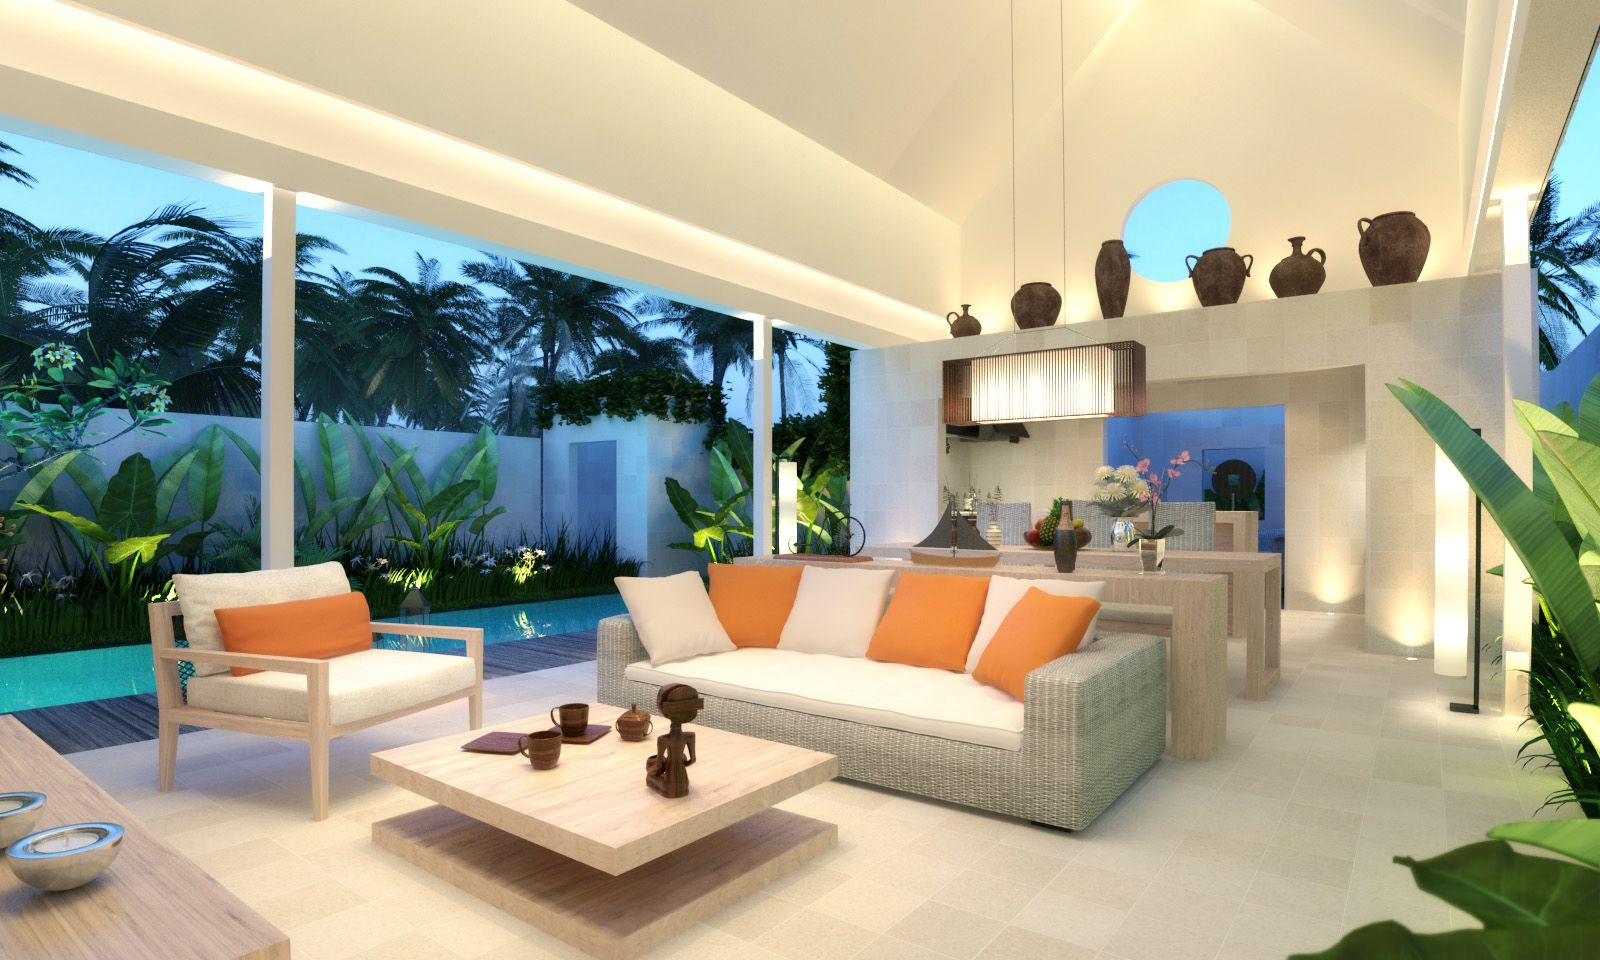 Sensational Modern Tropical Villa Bha Architect Villa Kawung Canggu Onthecornerstone Fun Painted Chair Ideas Images Onthecornerstoneorg